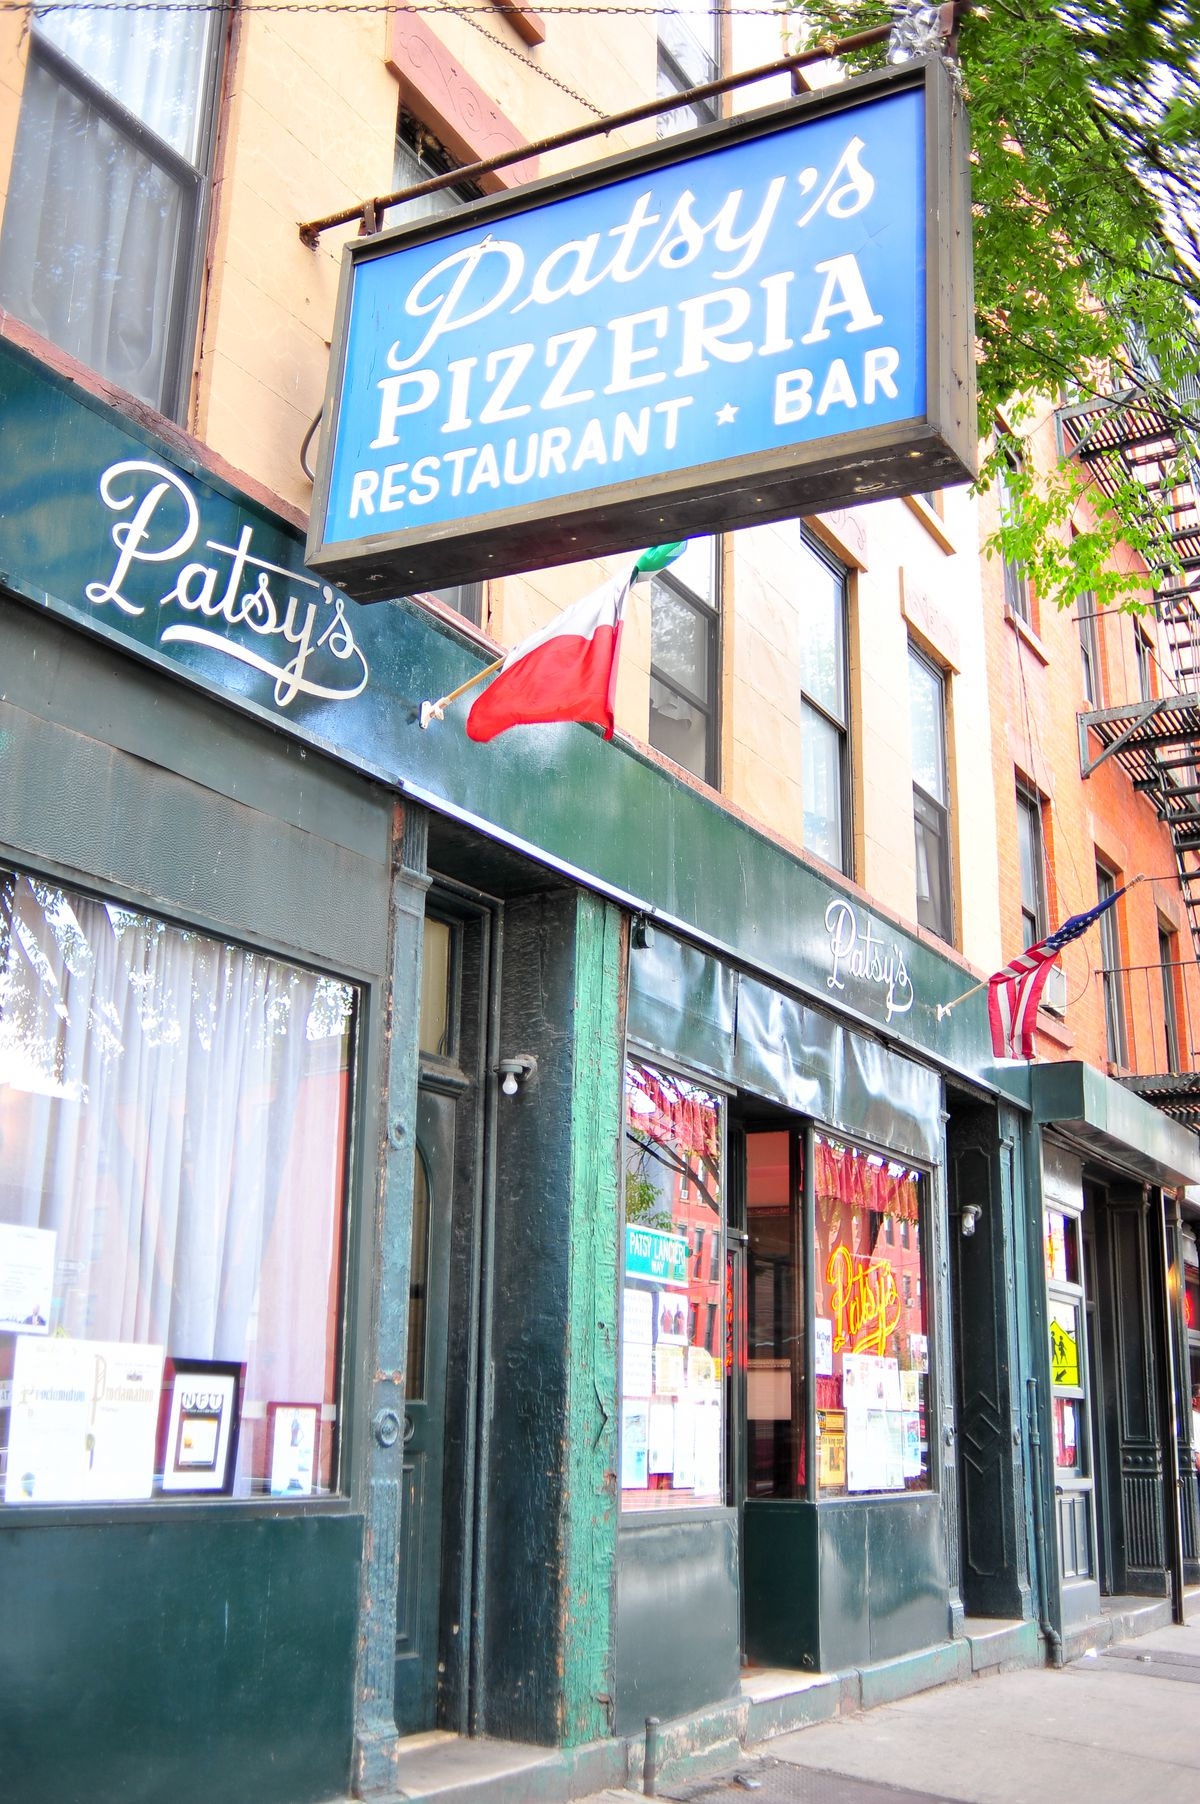 New York Pizza Styles: A Complete Guide - Eater NY